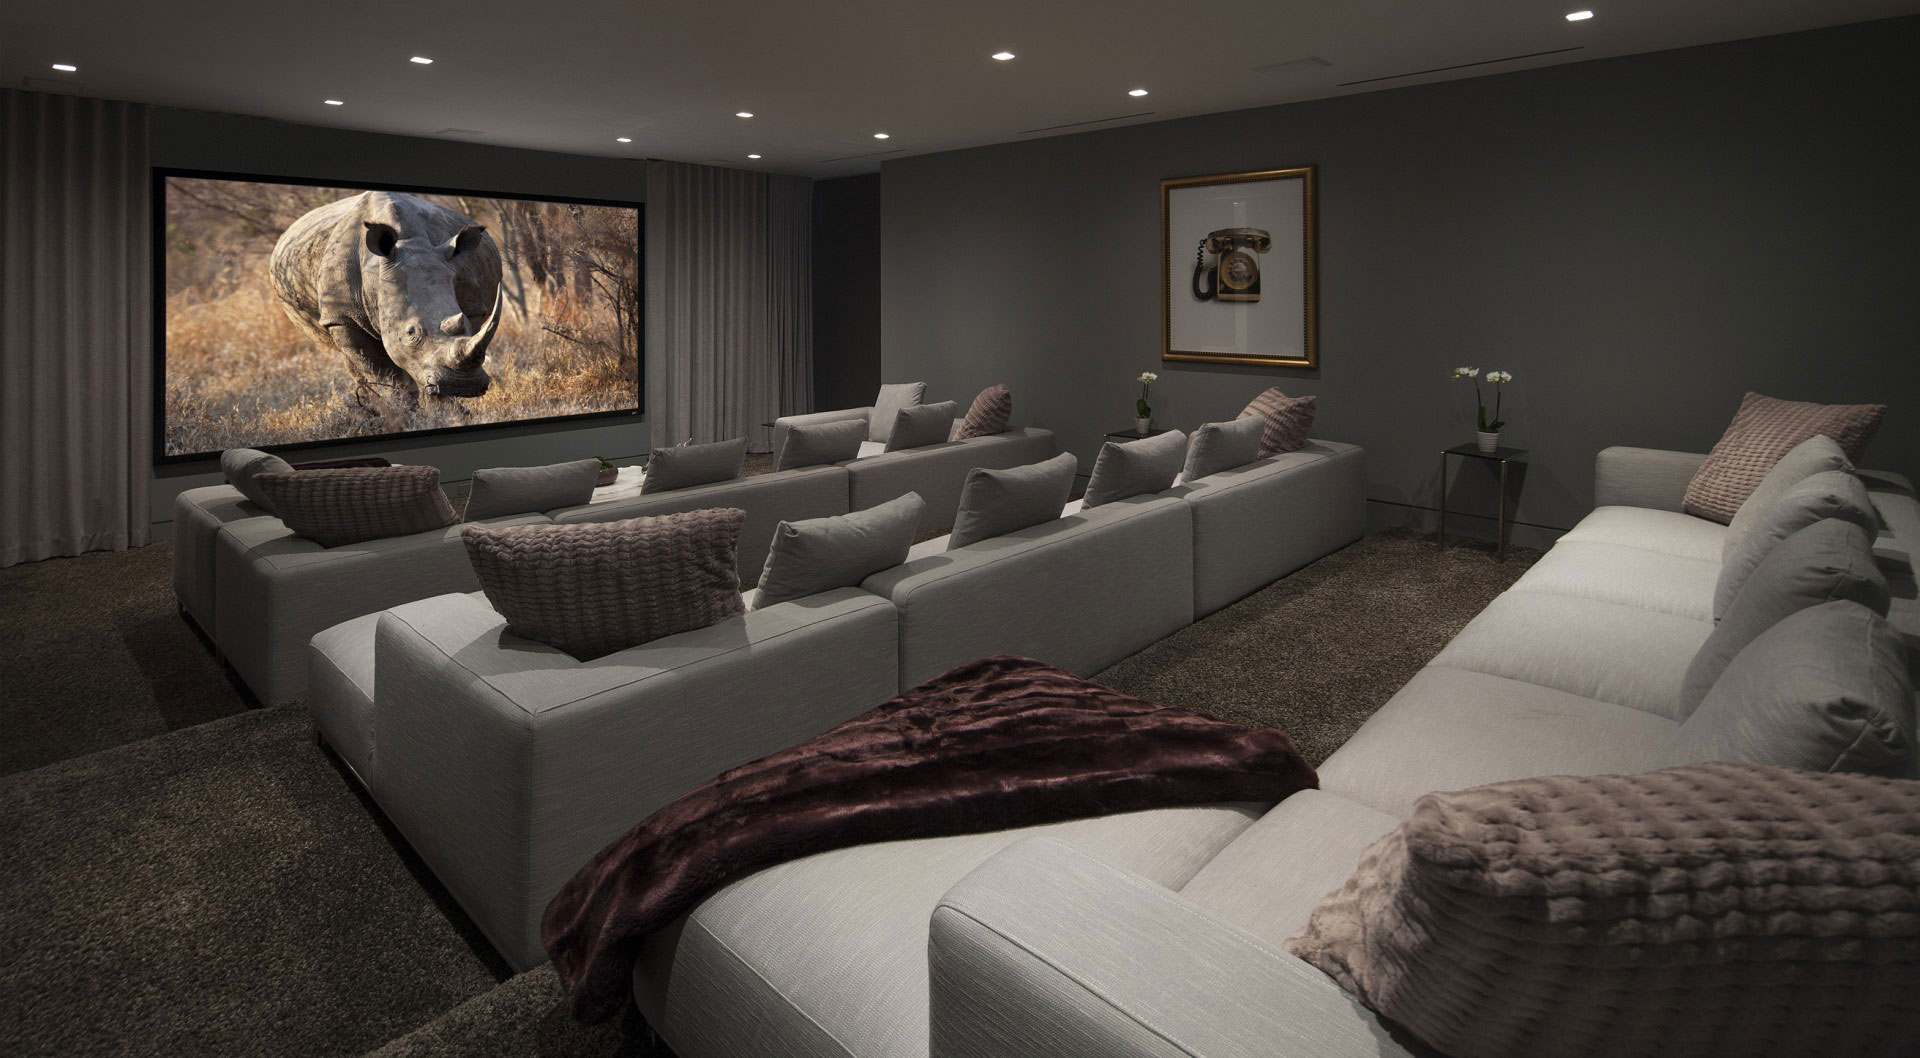 Best Home Theater Design home theater system delhi ncr | home theater designing | home